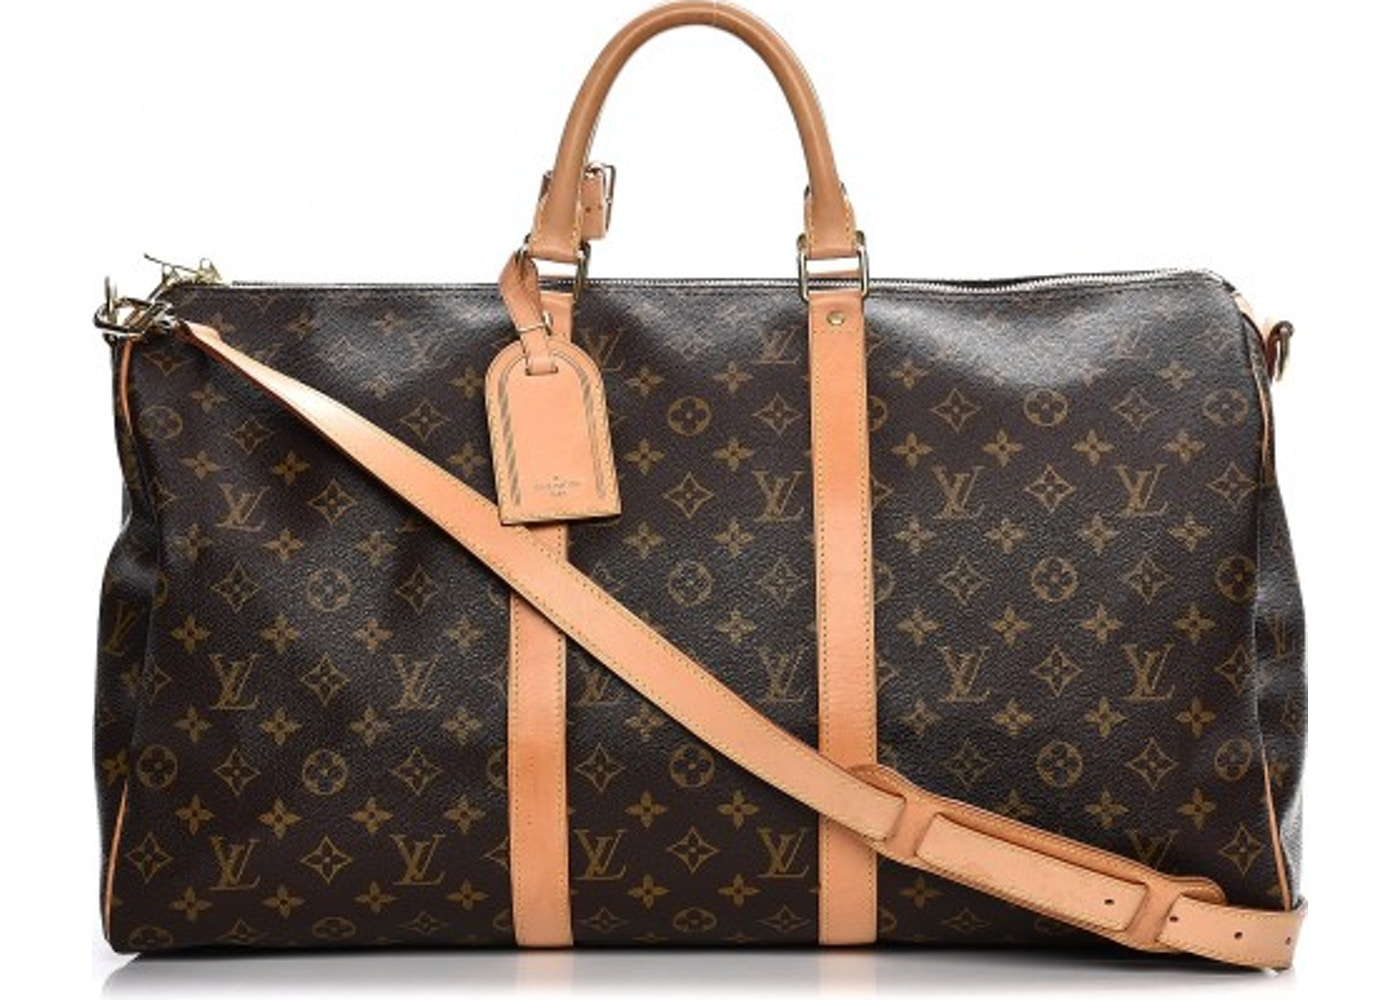 48e3c148c4195 Louis Vuitton Keepall Bandouliere Monogram 50 Brown. Monogram 50 Brown